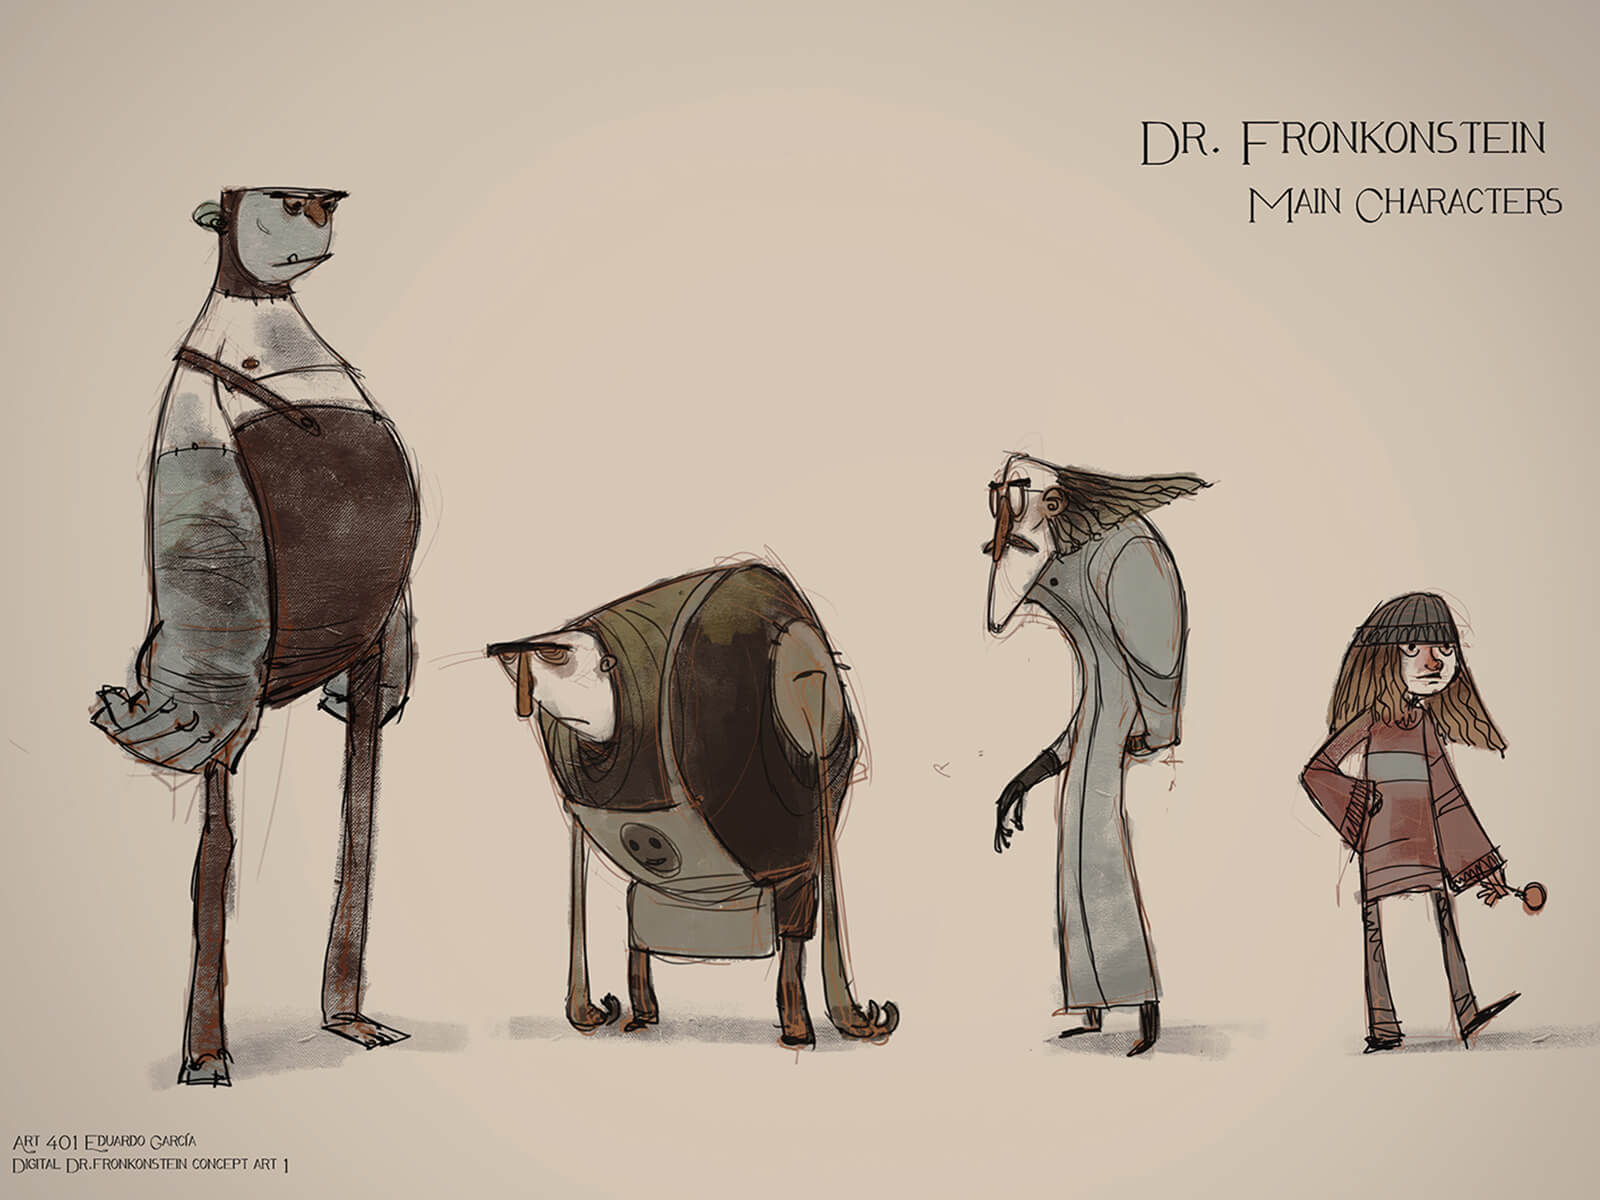 Concept sketches of characters, including a tall monster, hunched-over assistant, mad scientist, and a young, modern girl.